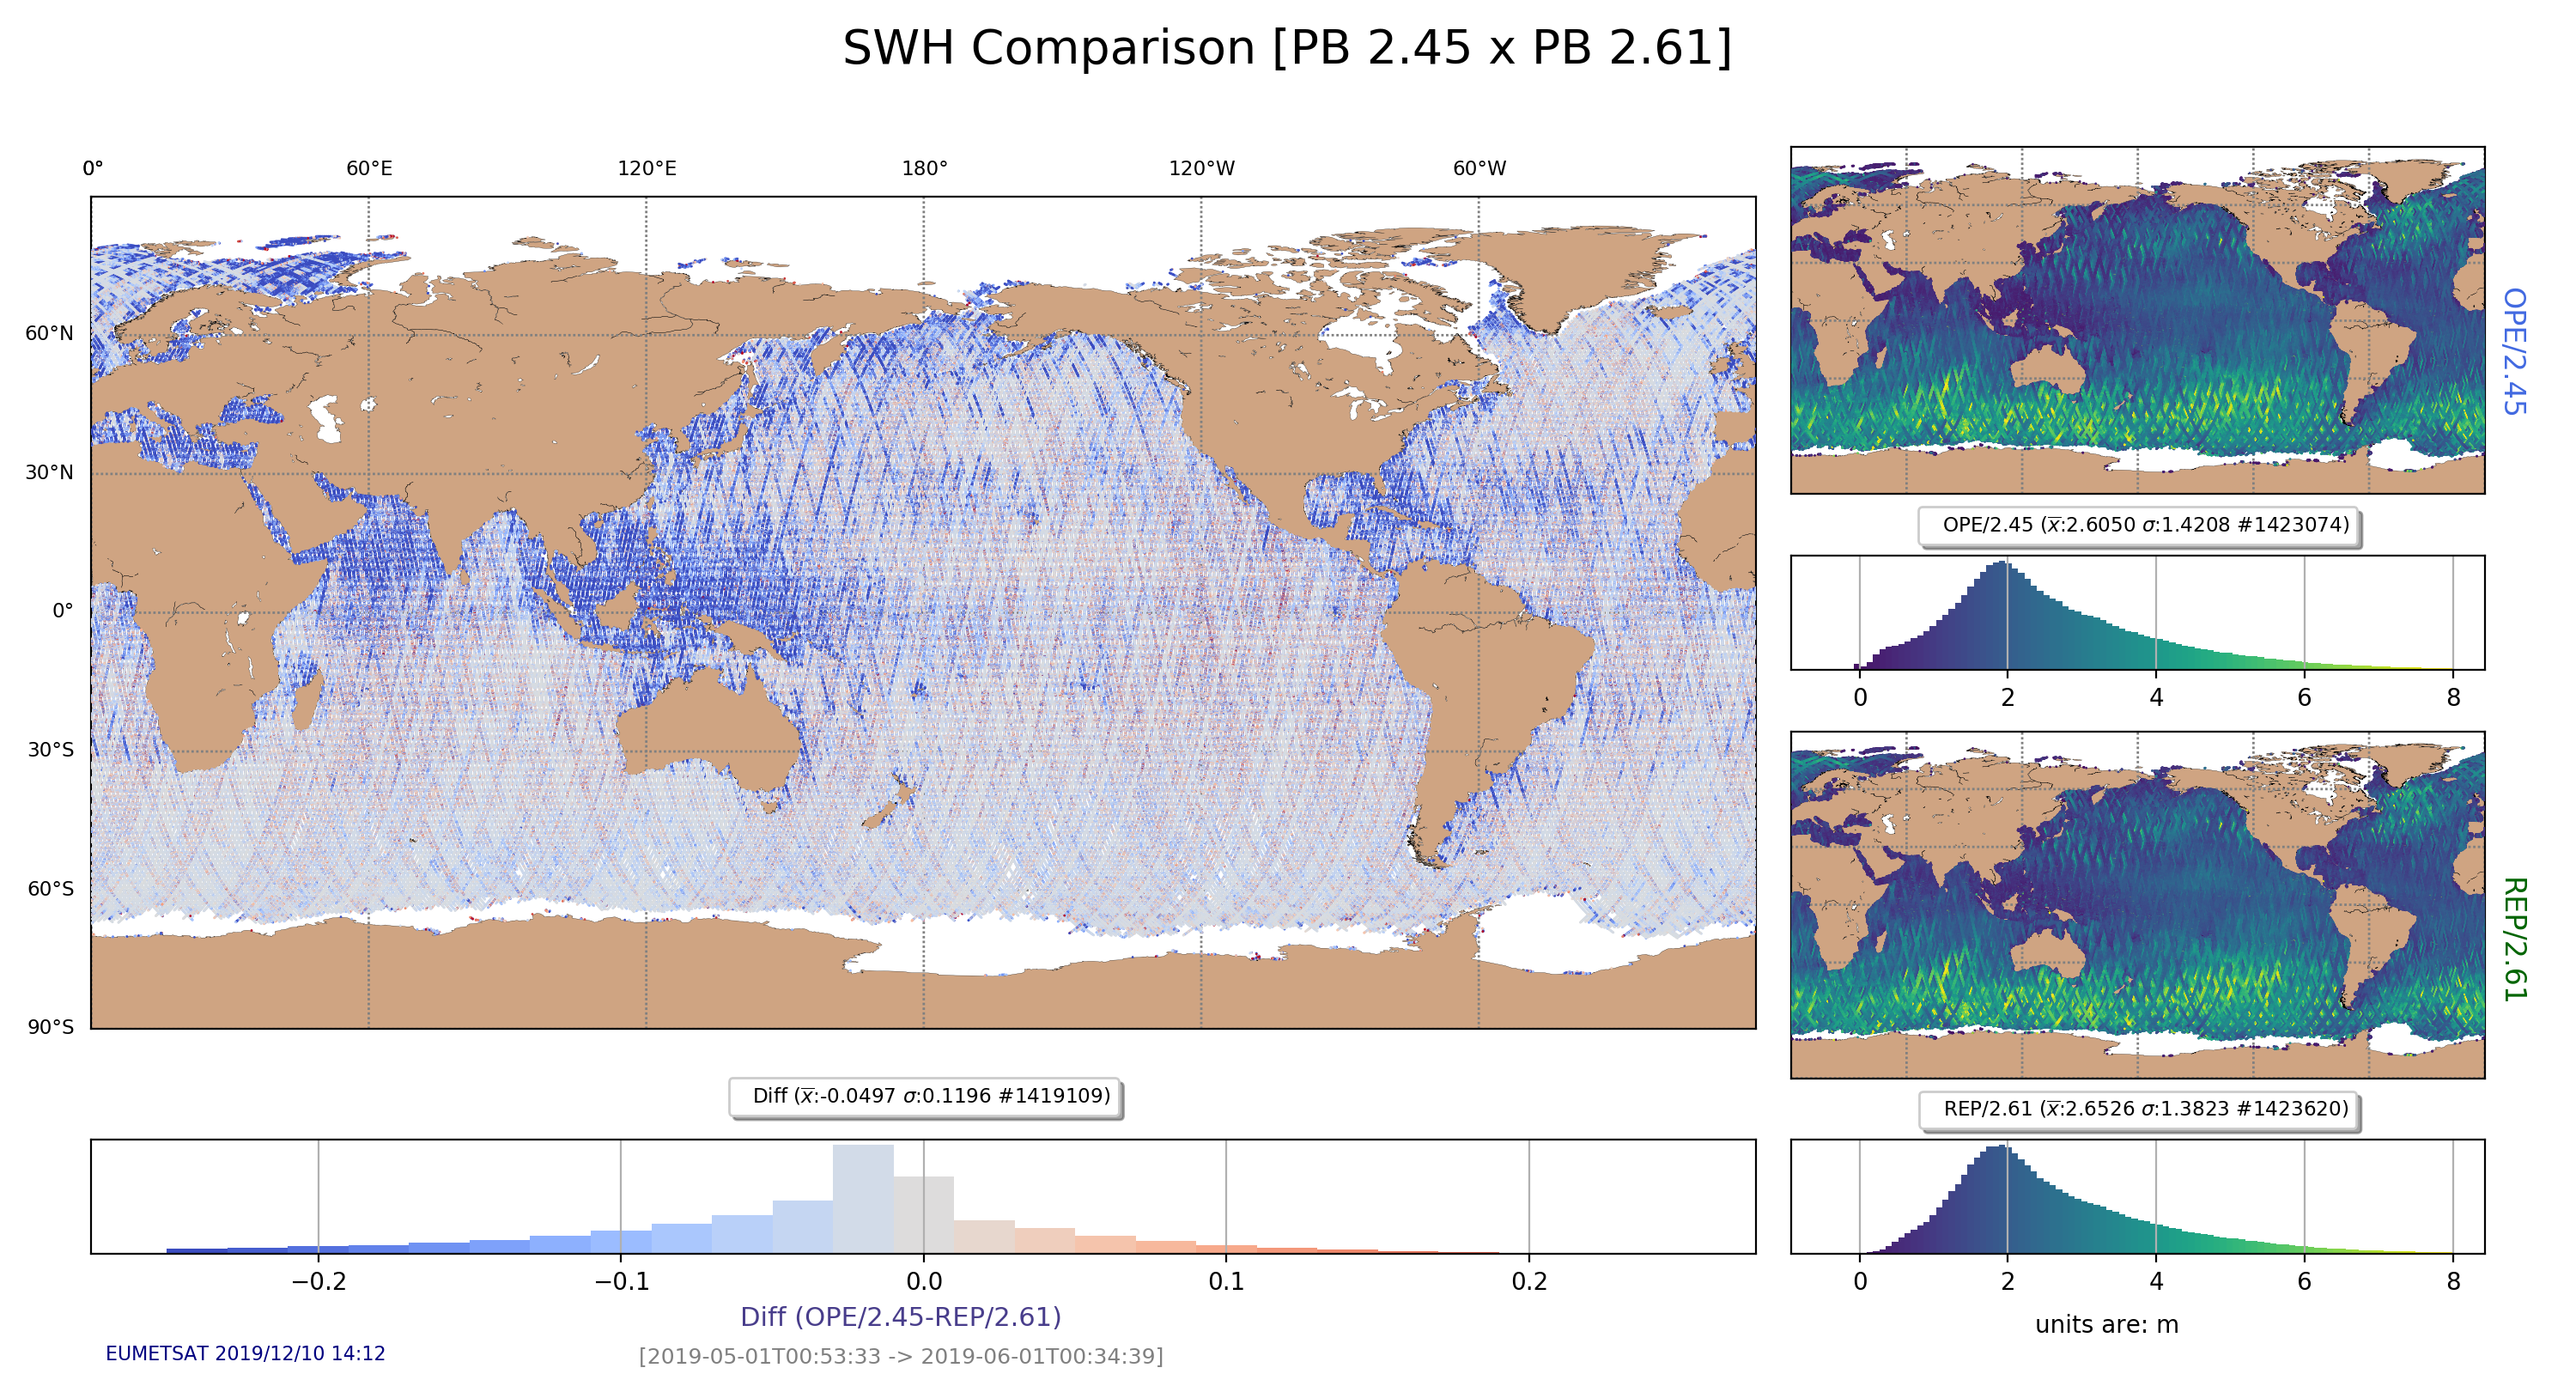 SWH comparison between PB 2.45 (BC 003) and PB 2.61 (BC 004). Data has been filtered for open-ocean, excluded any sea-ice contamination, and limited to the -0.5 meters to 8 meters of SWH. The differences are more significant in low wave height areas, but the mean difference is of 5 cm in wave height.